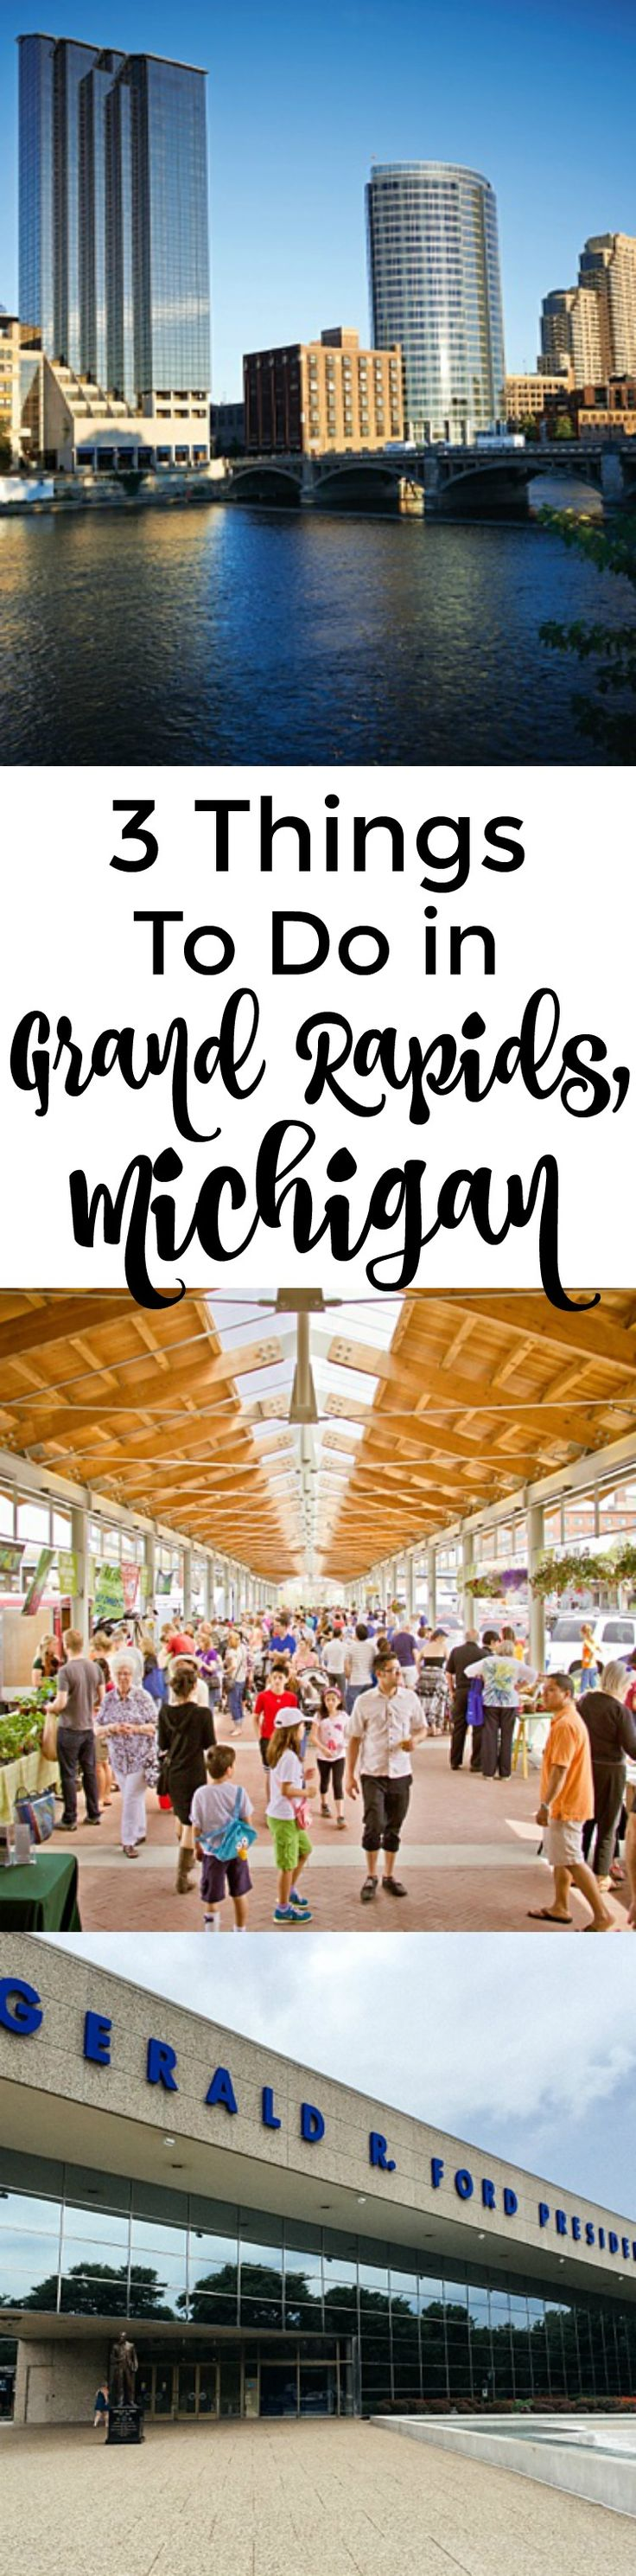 3 Things to do in Grand Rapids, Michigan including a visit to Founders Brewing Company, the Gerald R. Ford Presidential Museum, and the Downtown Market.